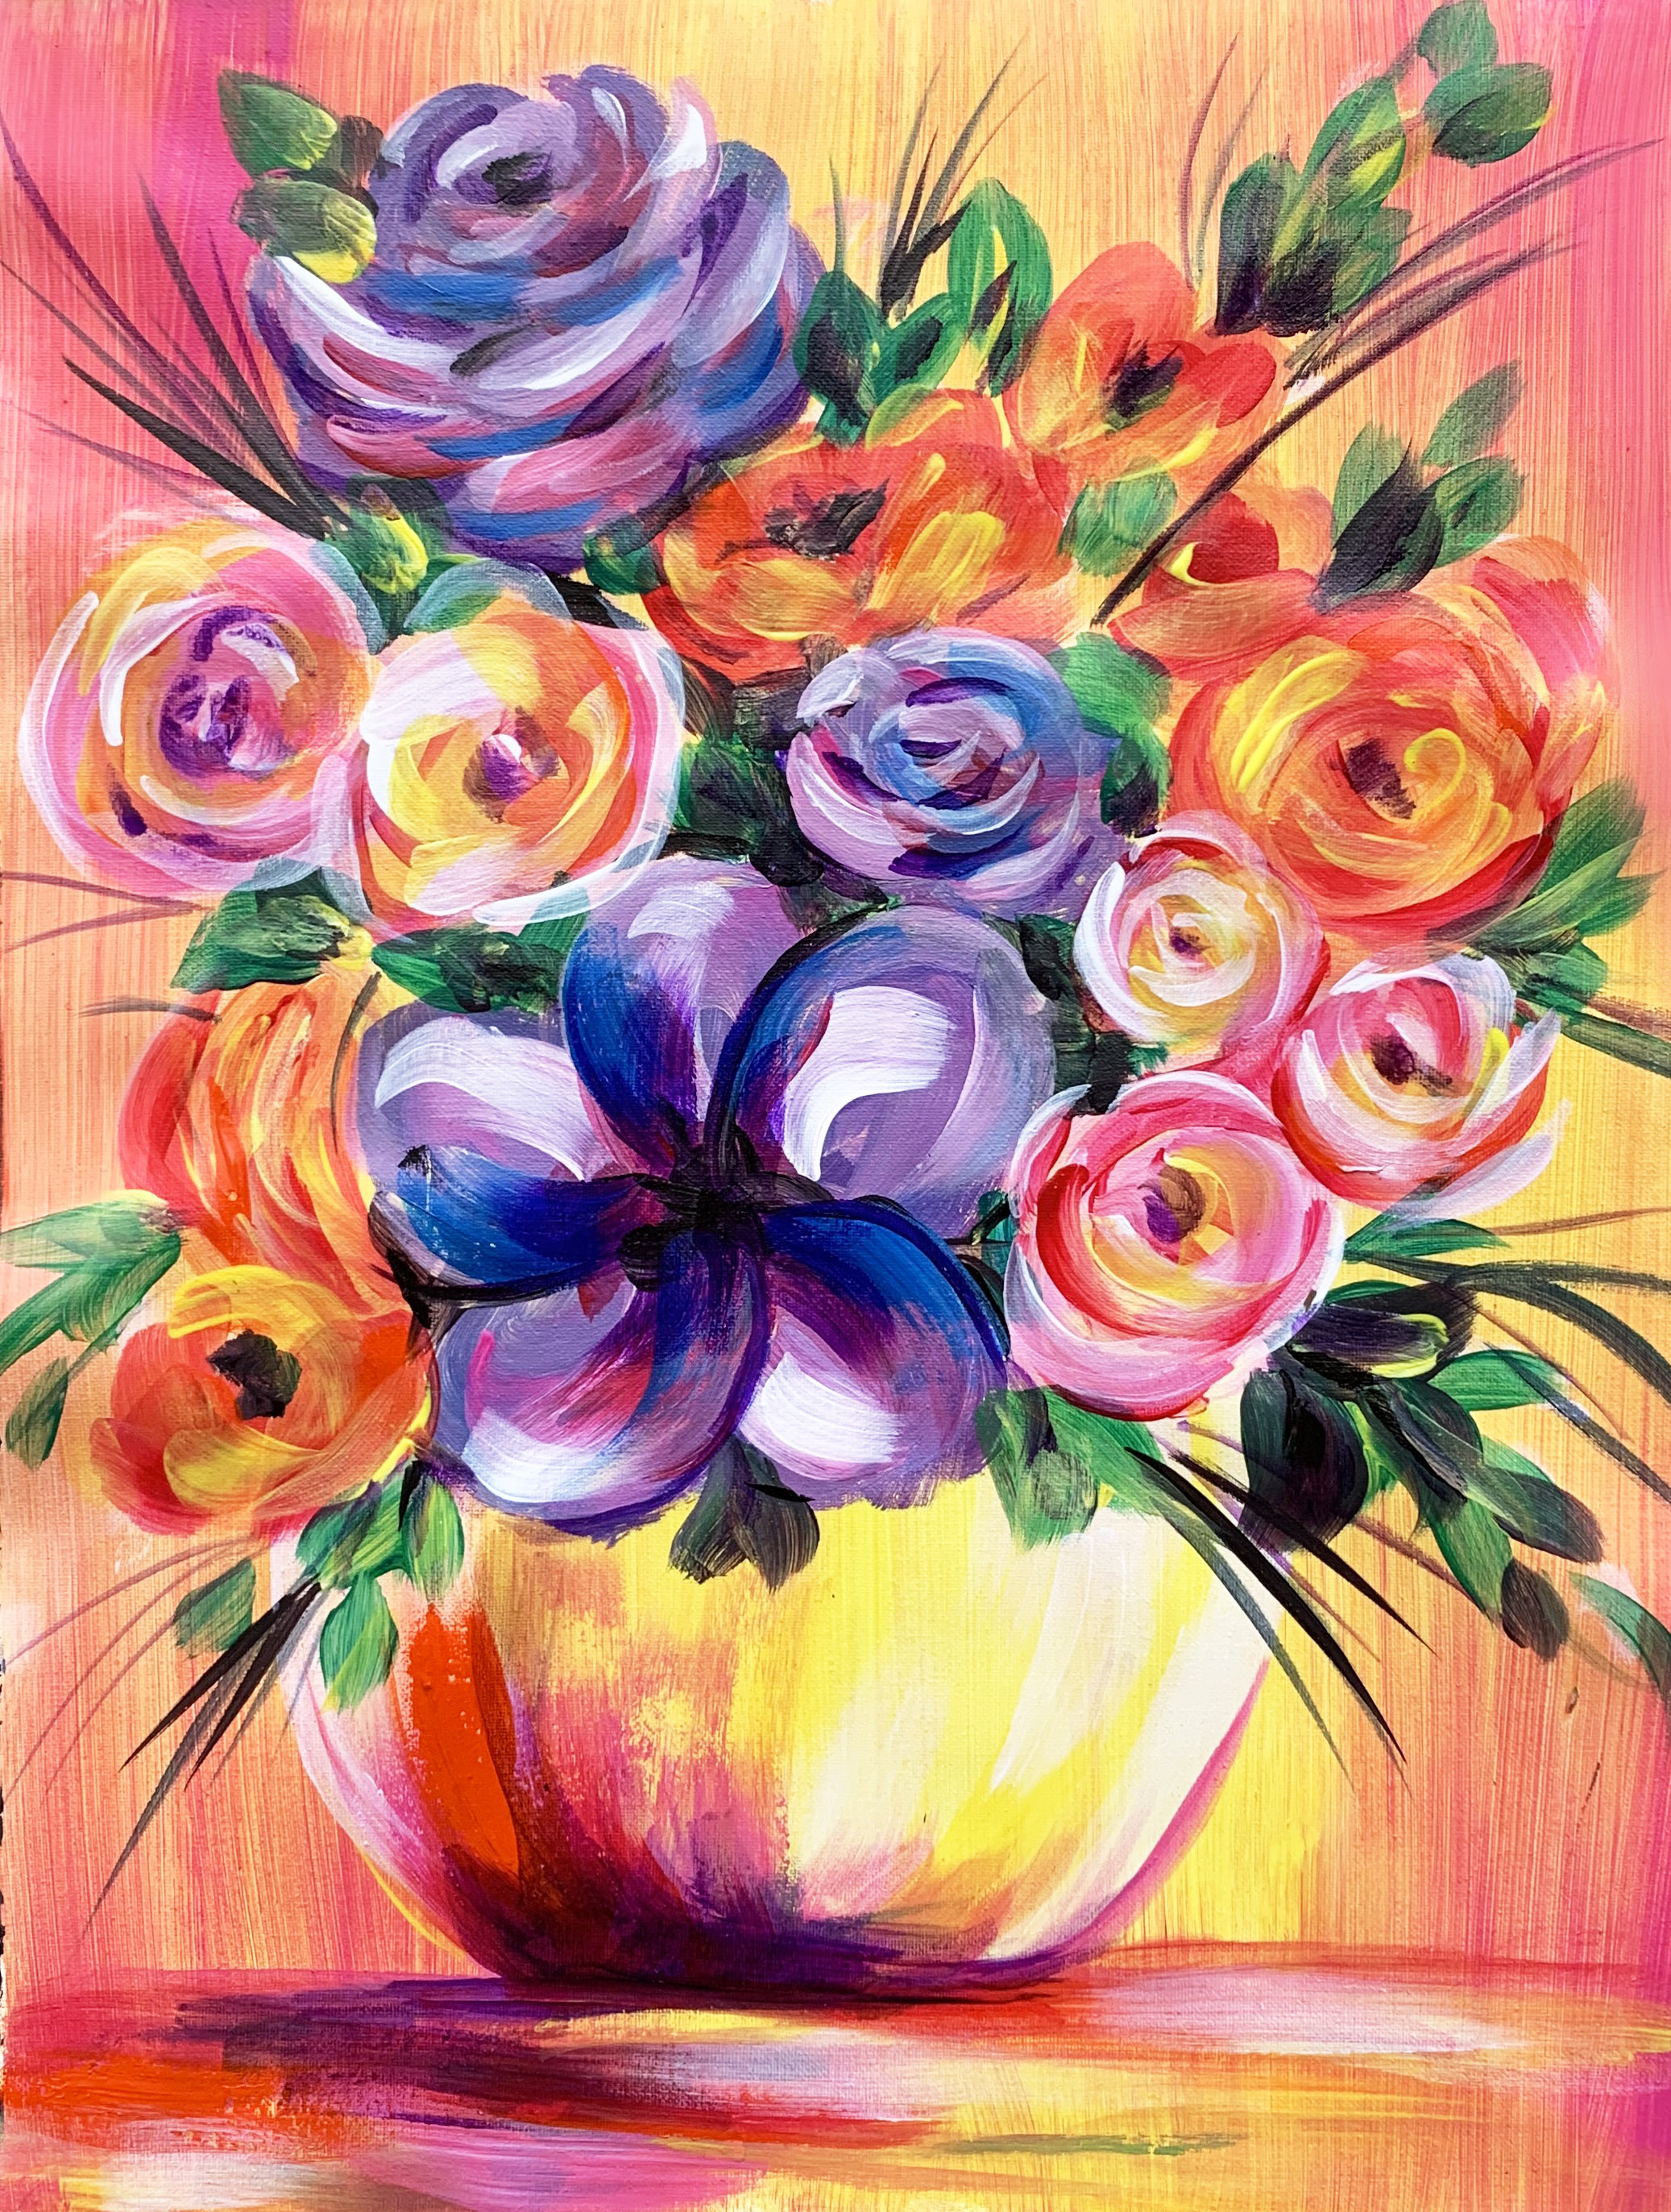 A Vibrant Flower Bouquet experience project by Yaymaker